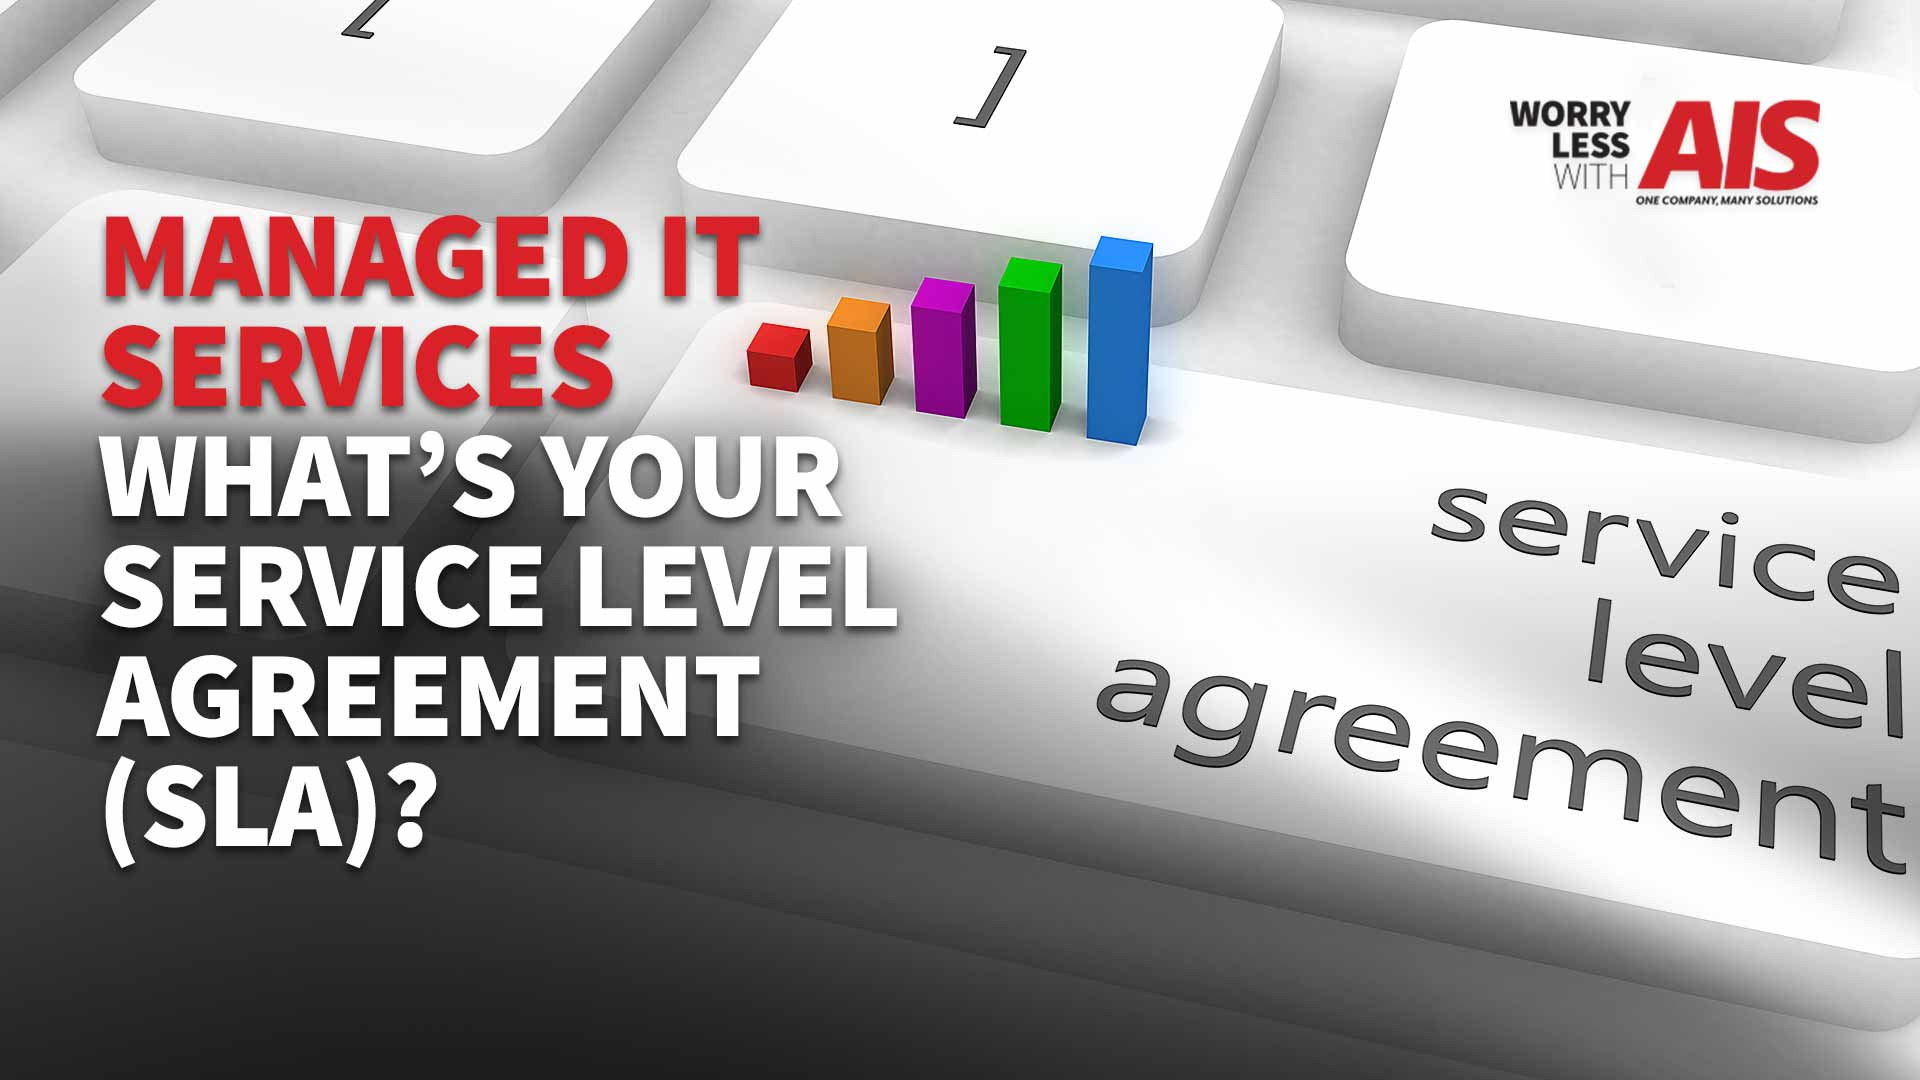 managed-it-services-service-level-agreement